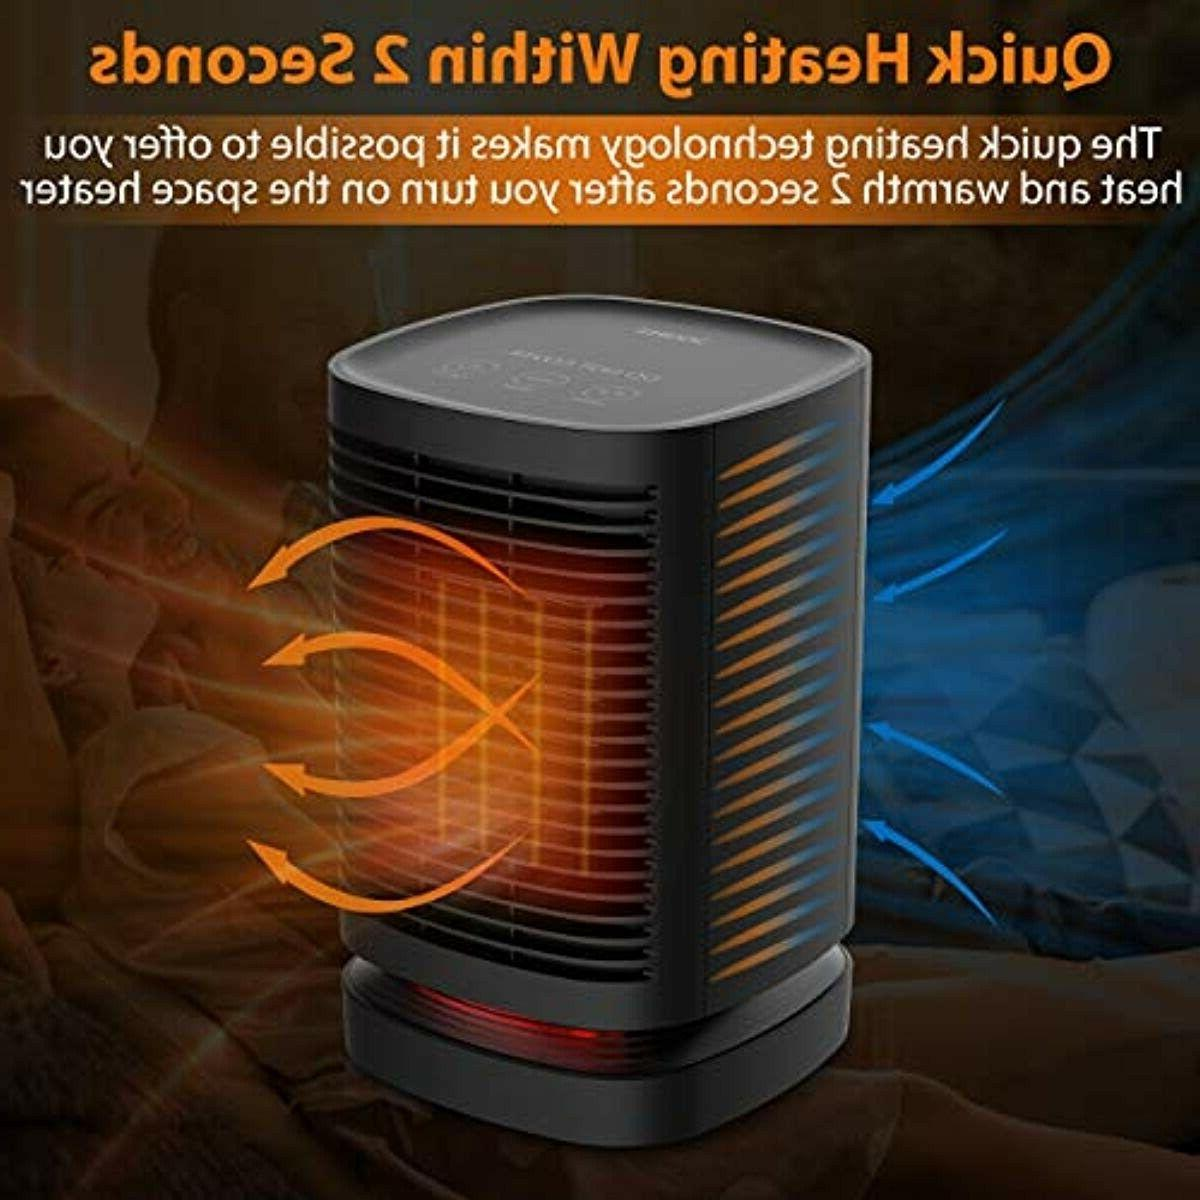 DOUHE Space Heater, 950W Smart Touch Control Space Osc